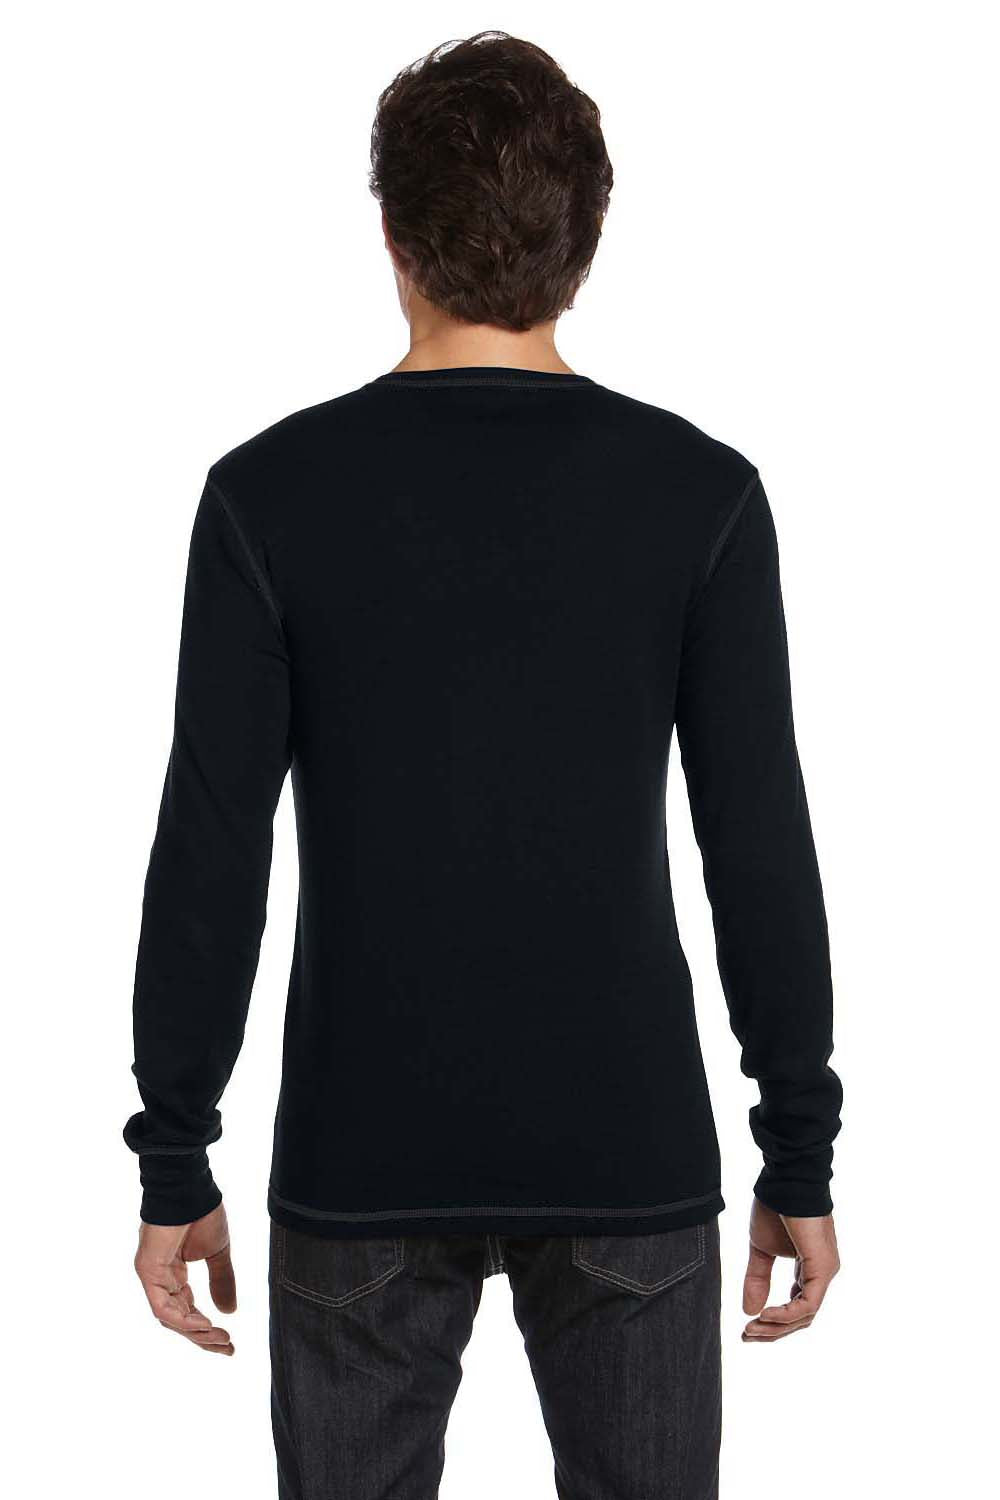 Bella + Canvas 3500 Mens Thermal Long Sleeve Crewneck T-Shirt Black Back